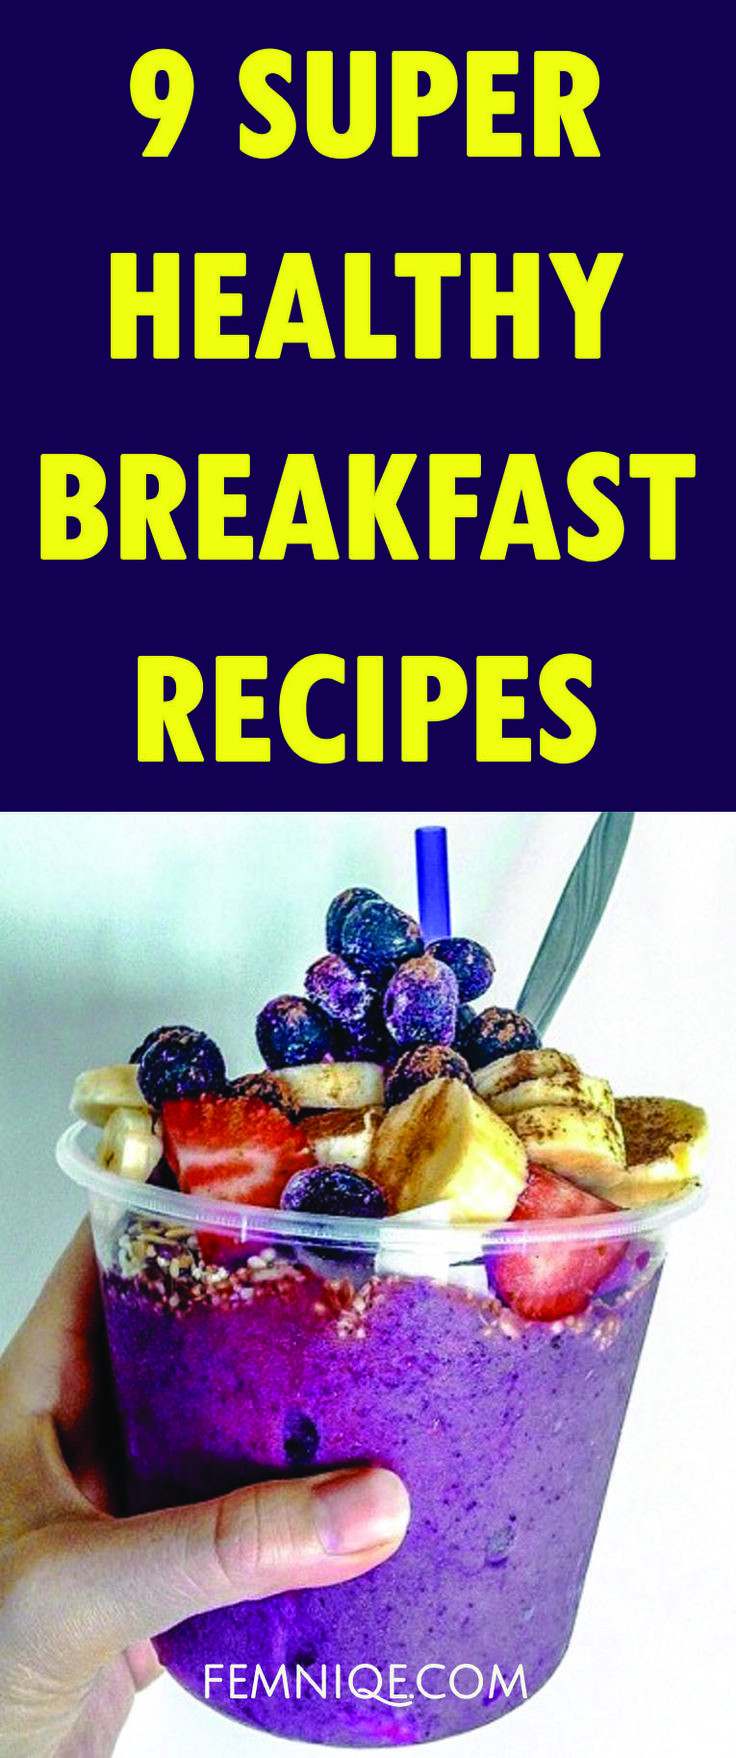 Super Healthy Breakfast  9 Super Healthy Breakfast Recipes For Weight Loss